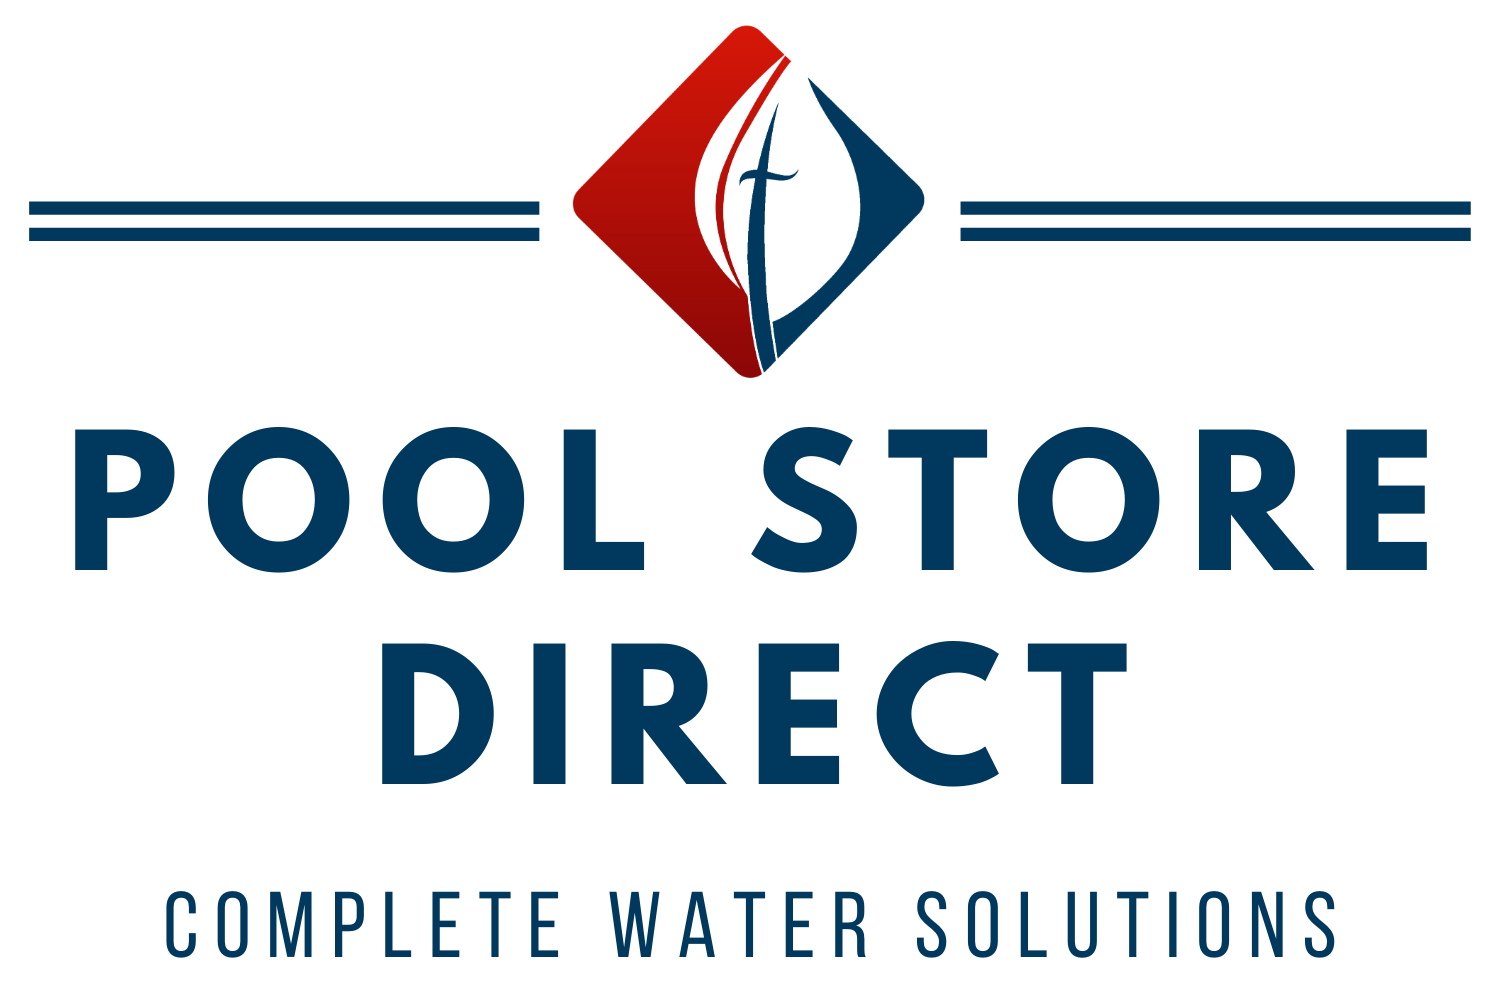 Pool Store Direct